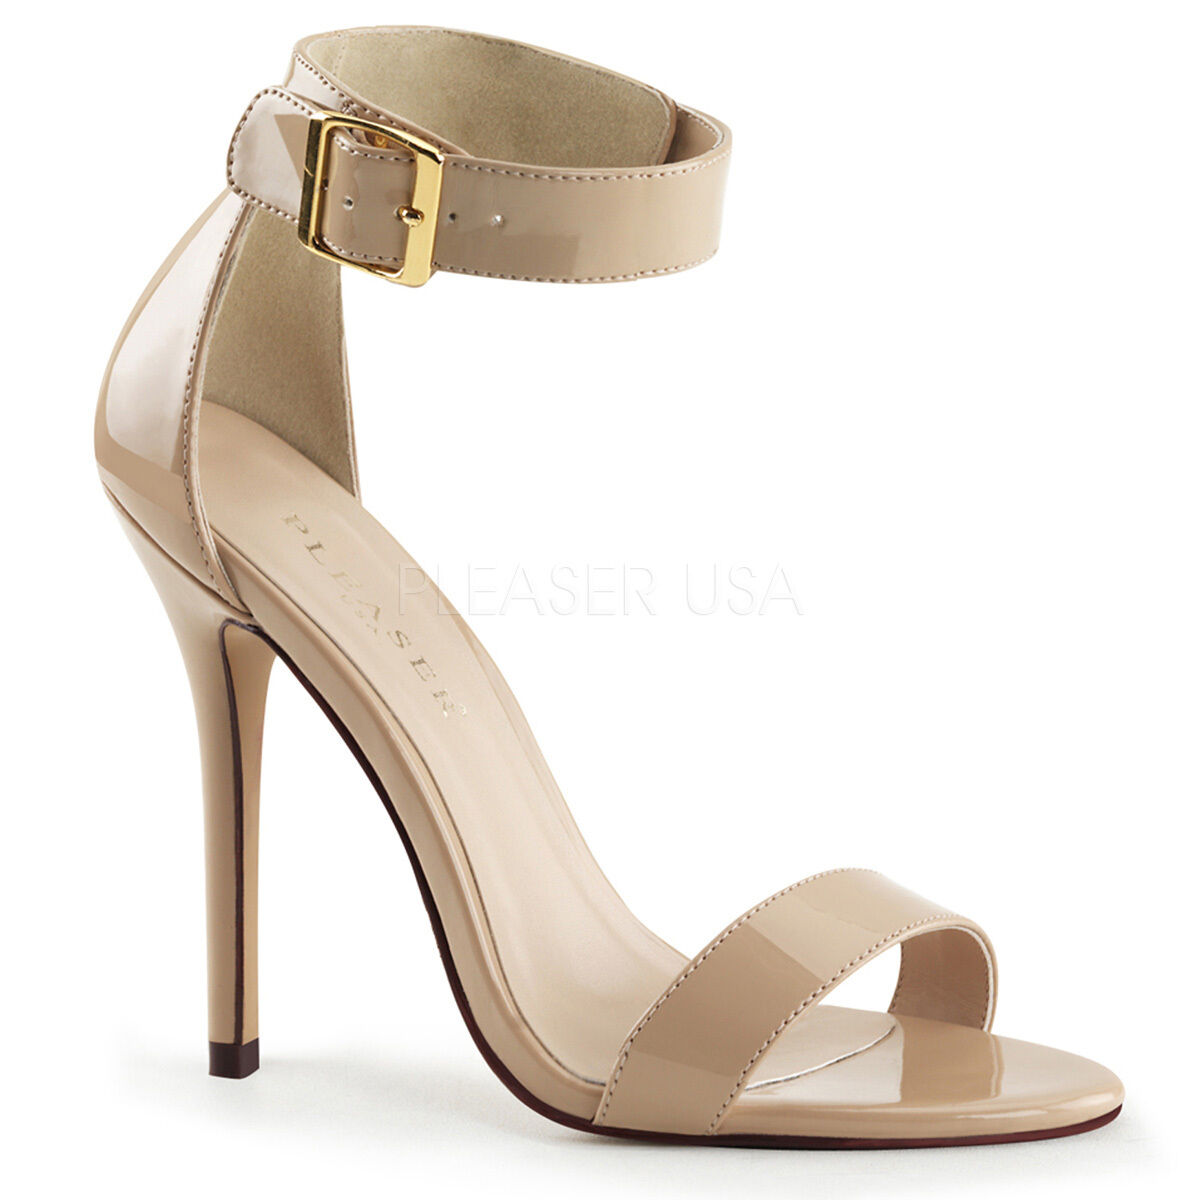 PLEASER Sexy 5  High Heel shoes Prom Evening Sandals w  Ankle Straps AMU10 CR